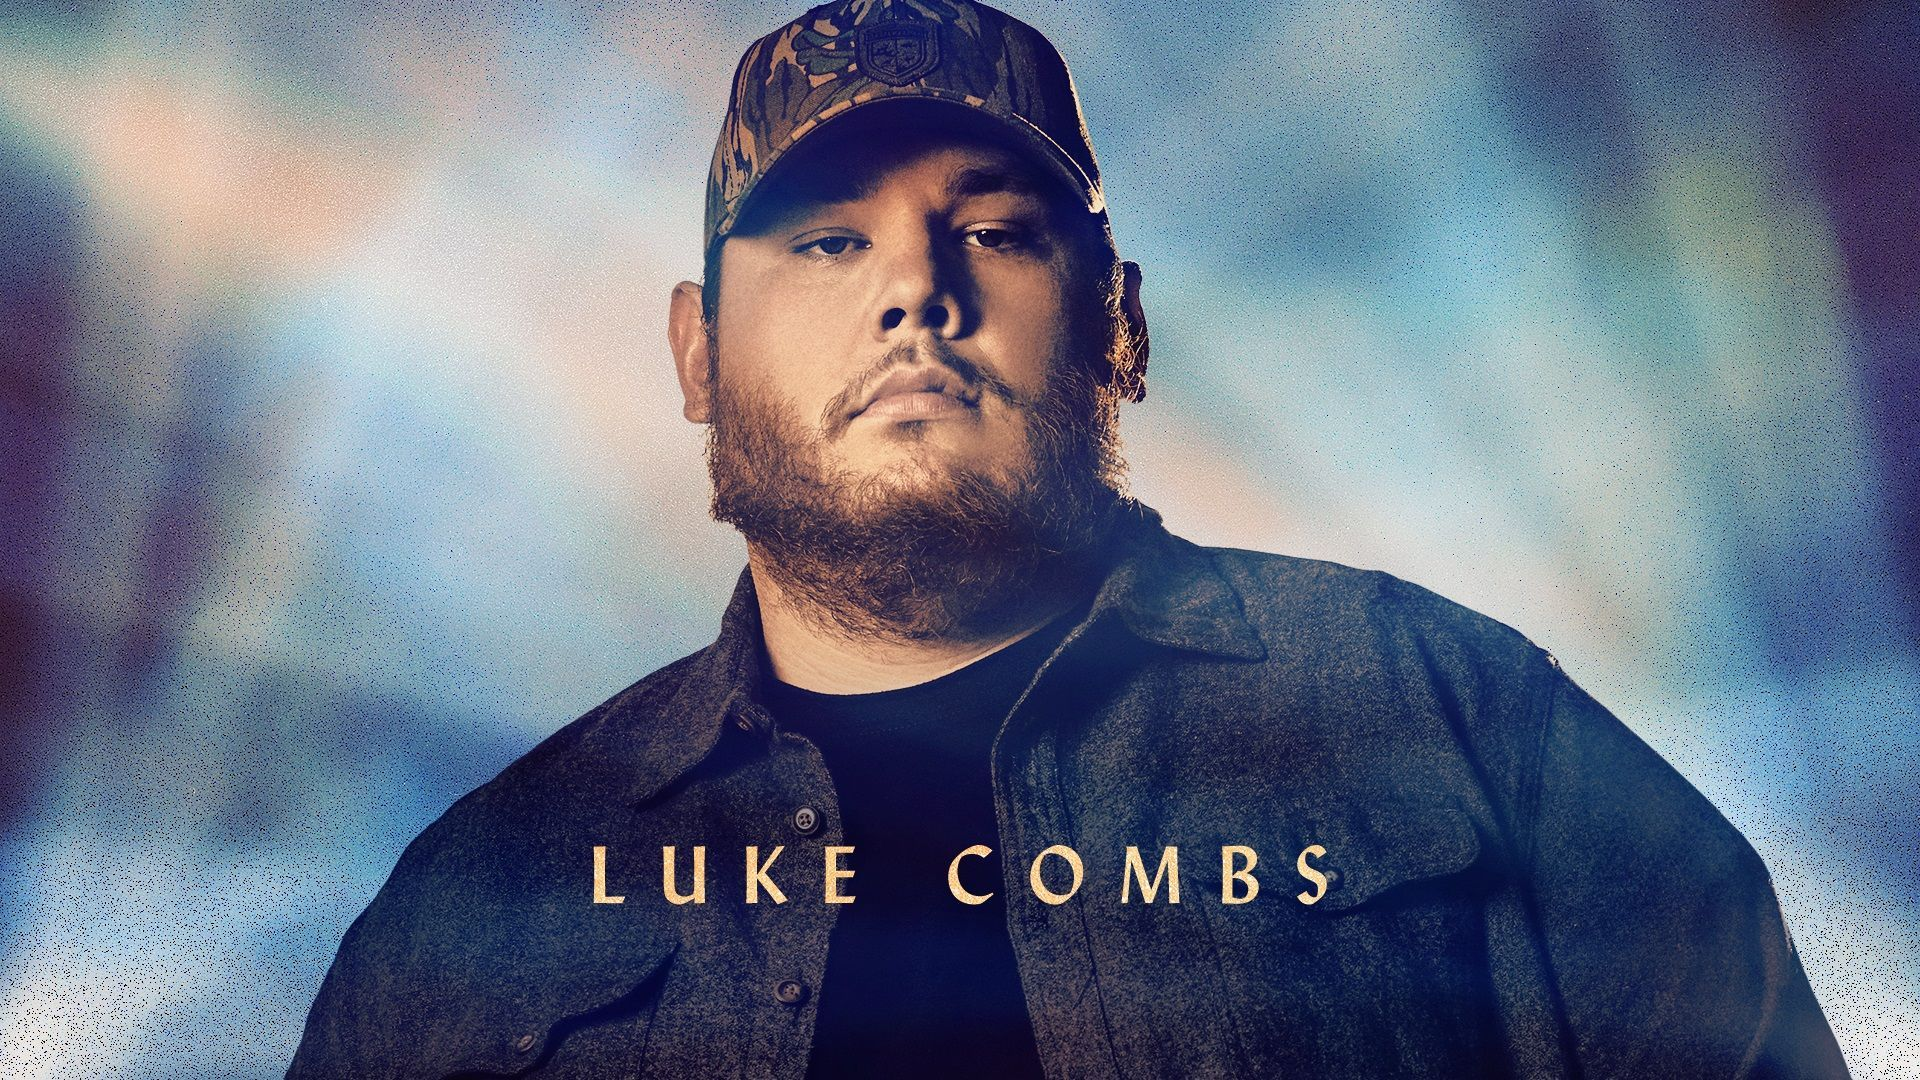 Luke Combs Cmt Artist Of The Year Cmt